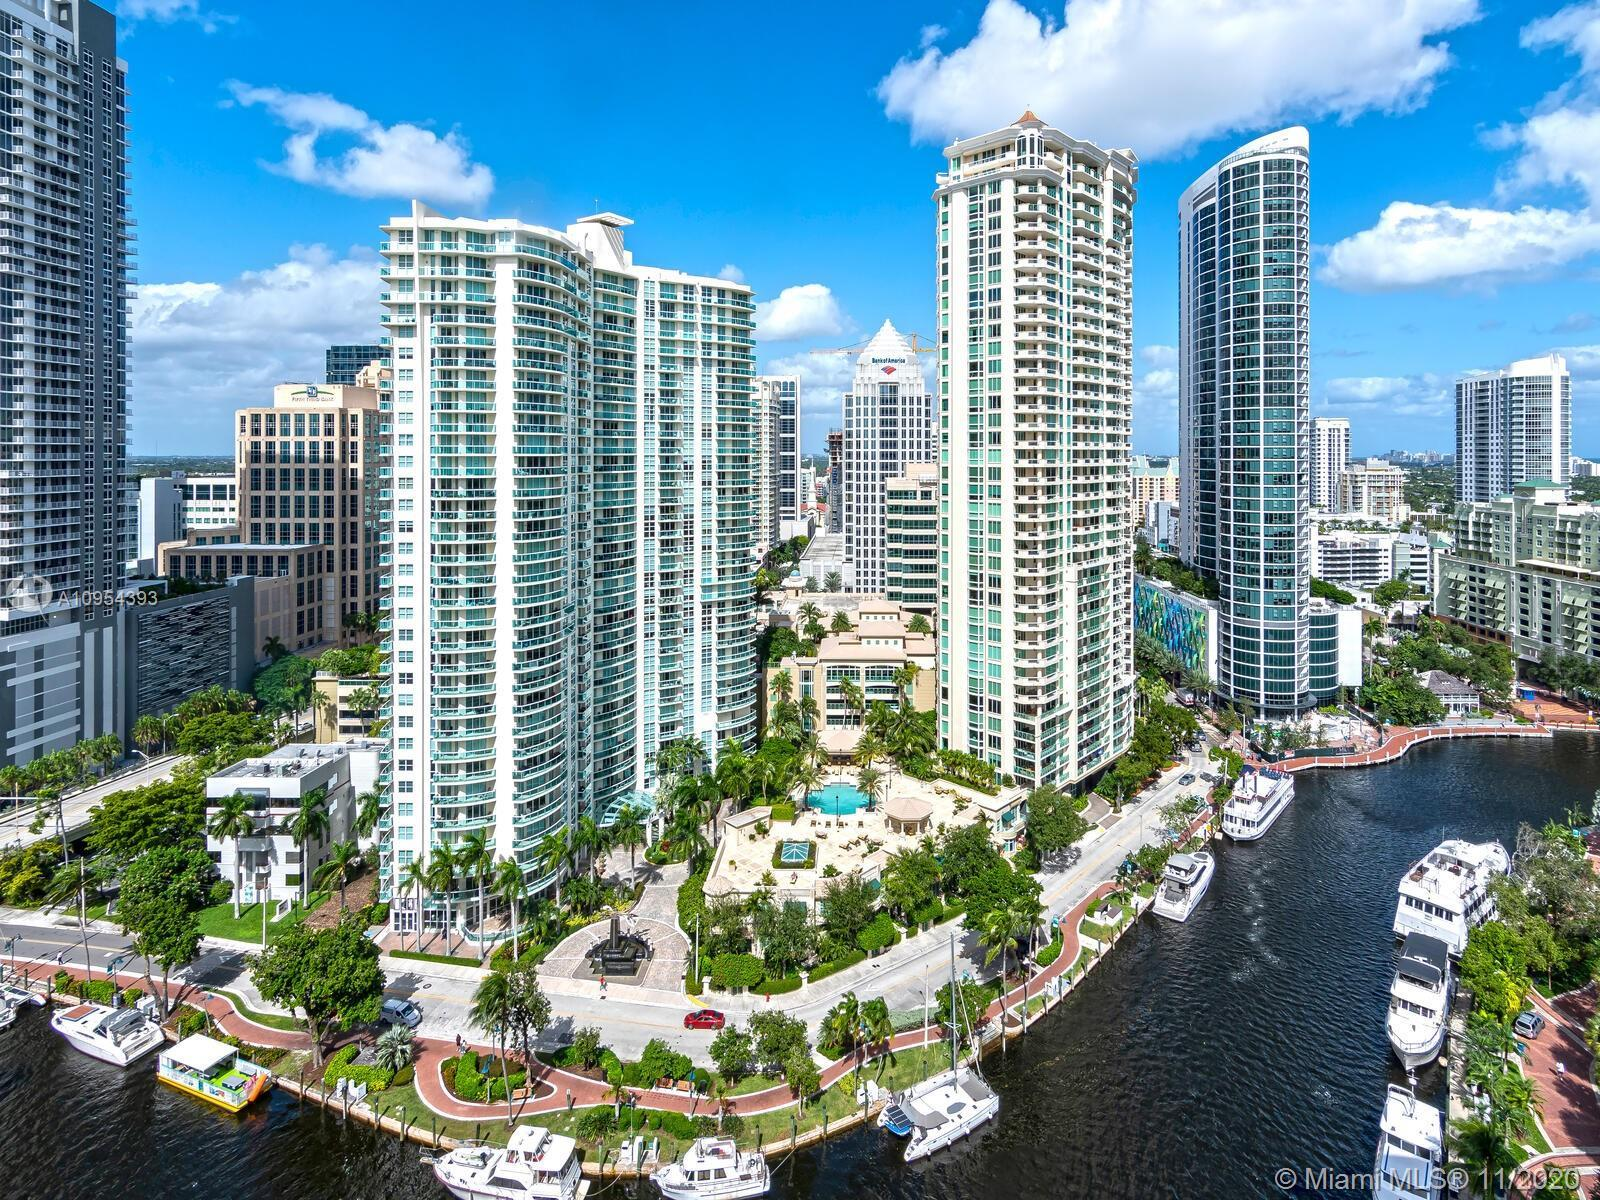 LARGE 3-BEDROOM CORNER UNIT PENTHOUSE APARTMENT WITH AMAZING OCEAN, MIAMI AND FT LAUDERDALE SKYLINE